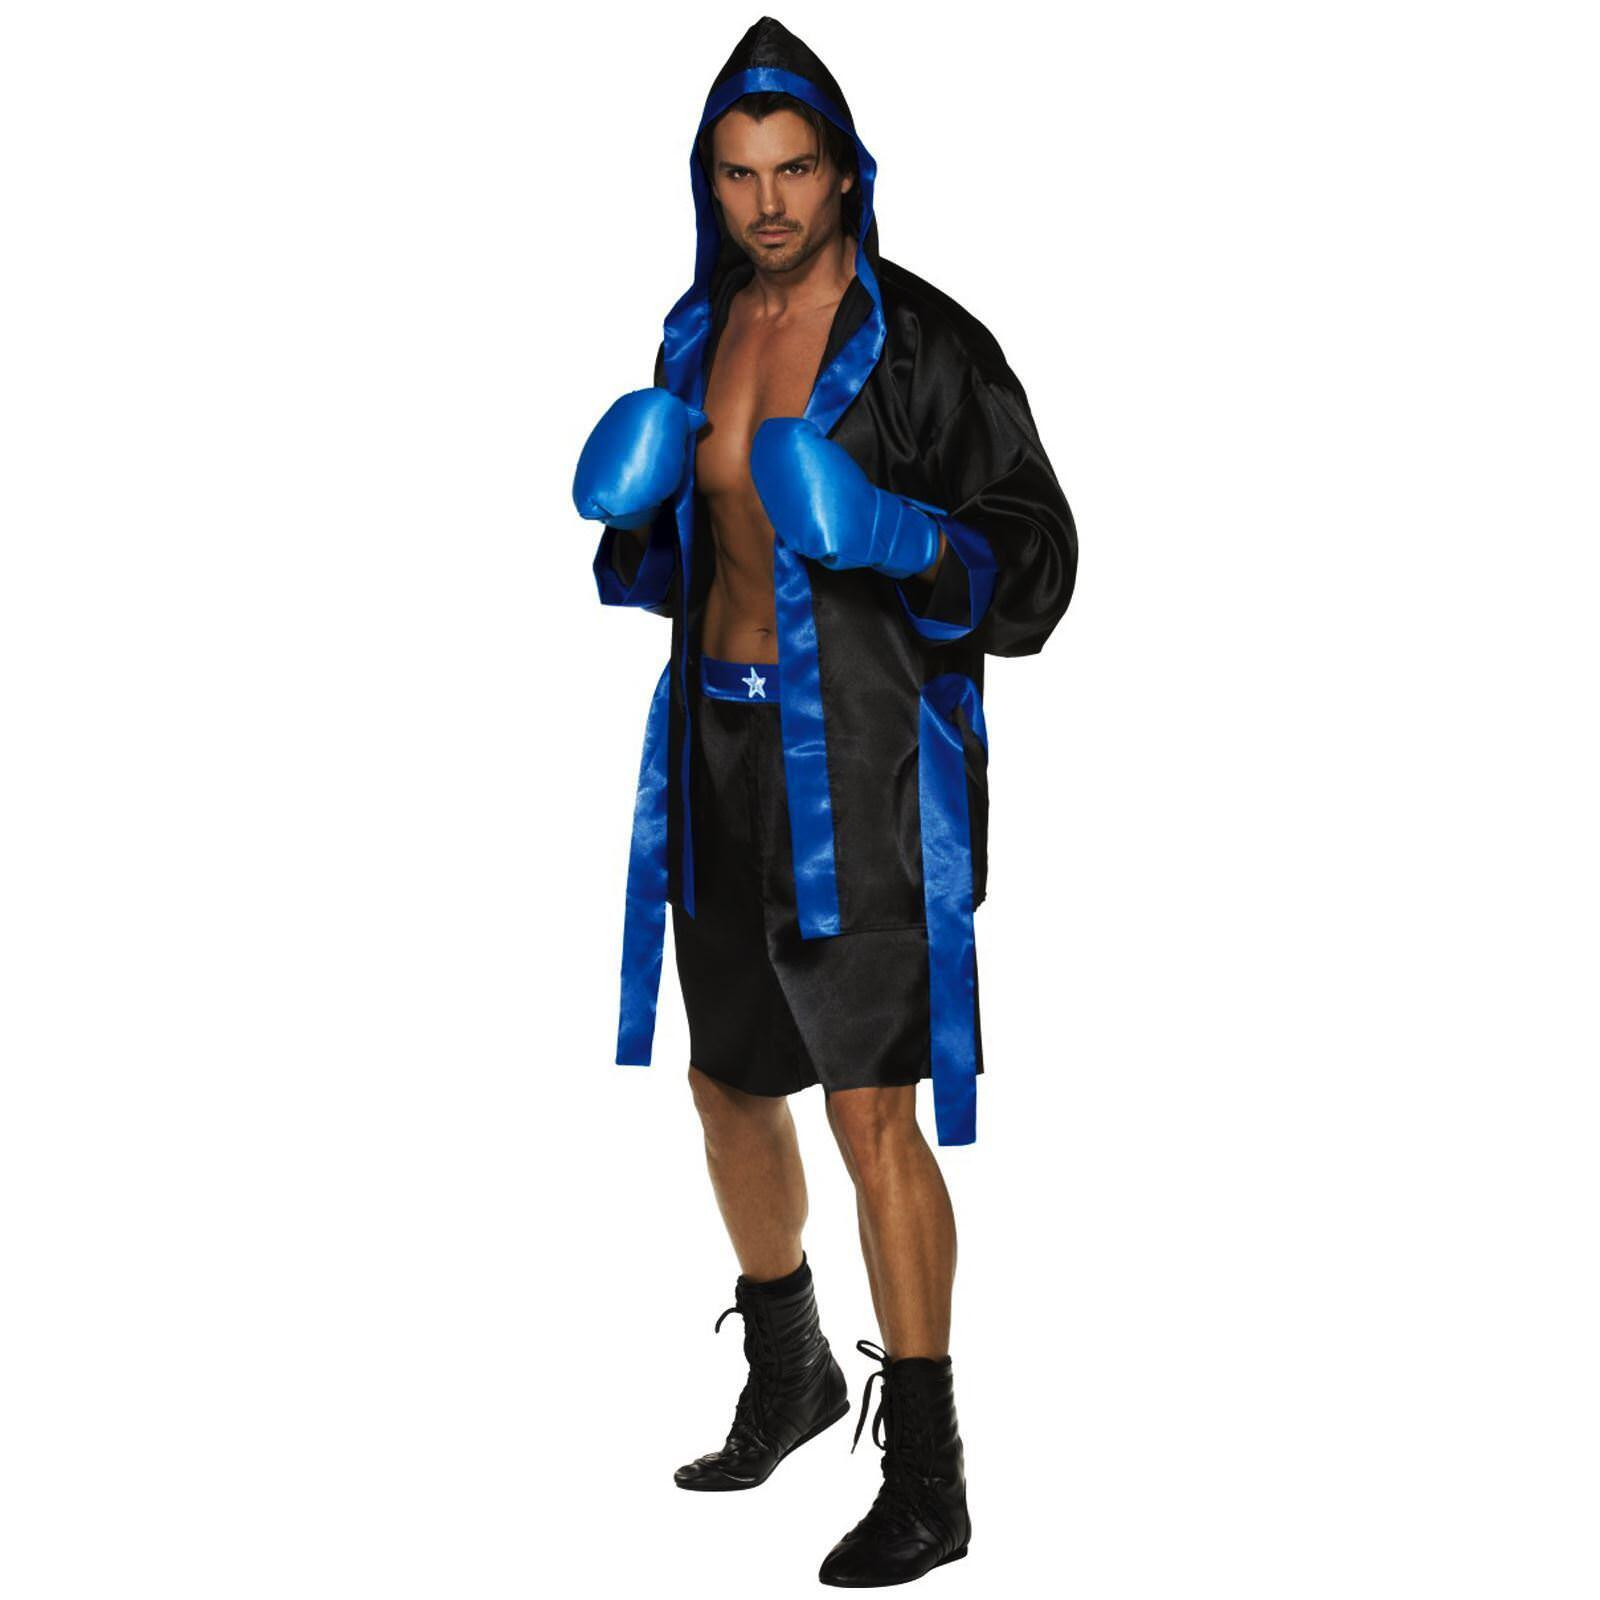 Adulto Adulto Adulto UOMO BOXING PUGILE FIGHTER Sports Champion ROBE Guanti Costume 304f52